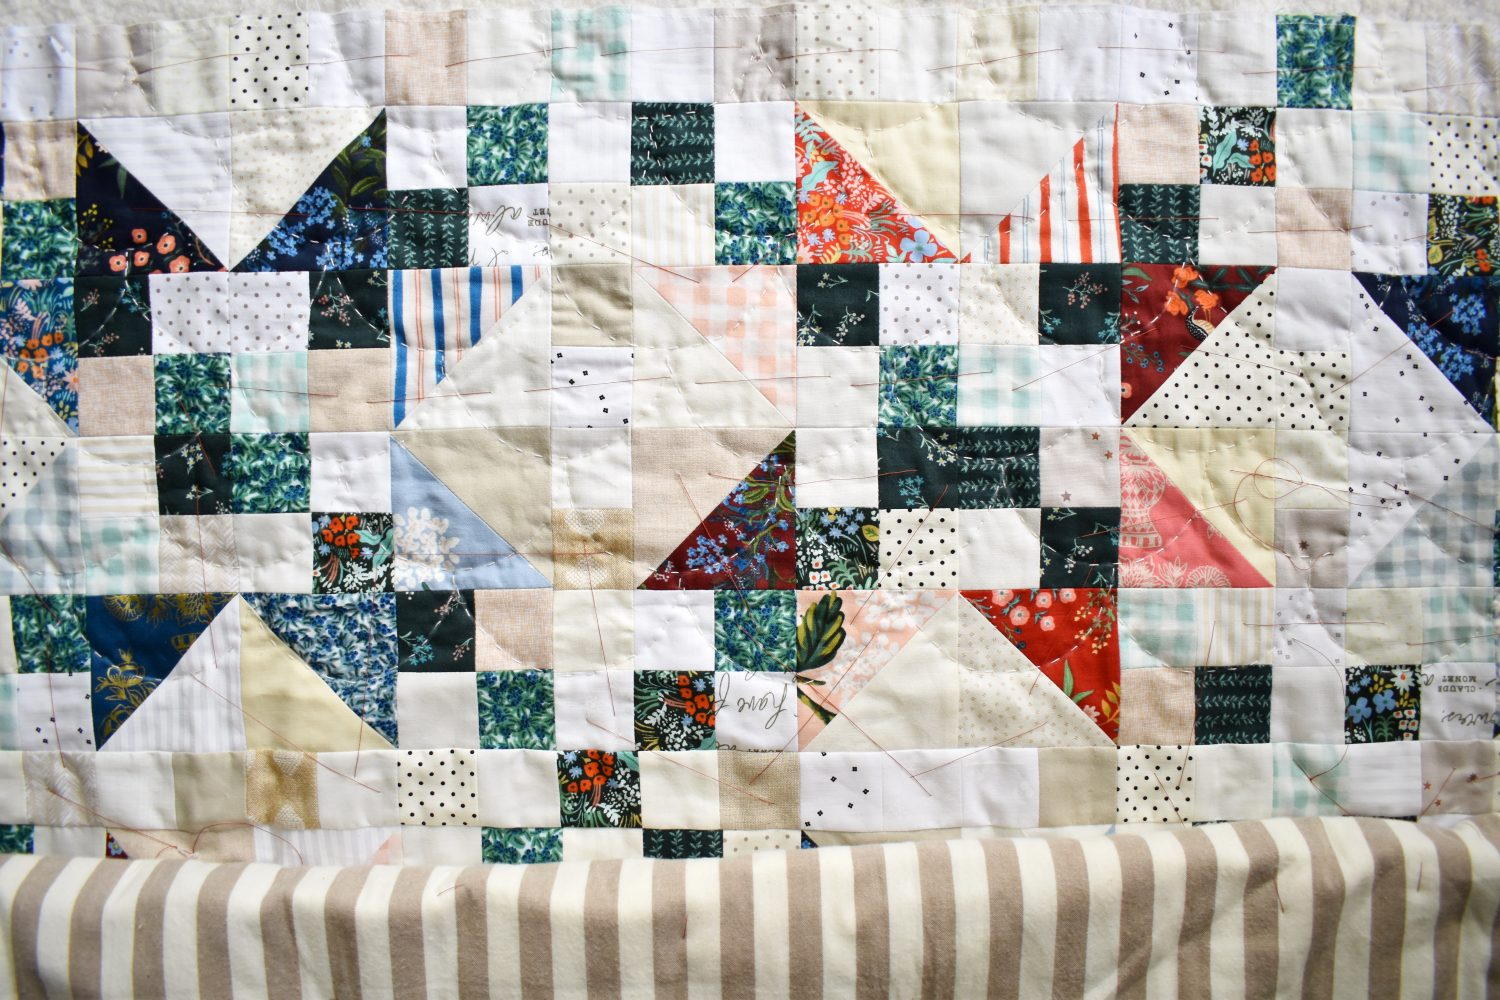 Starlite quilt with hand quilted clamshells